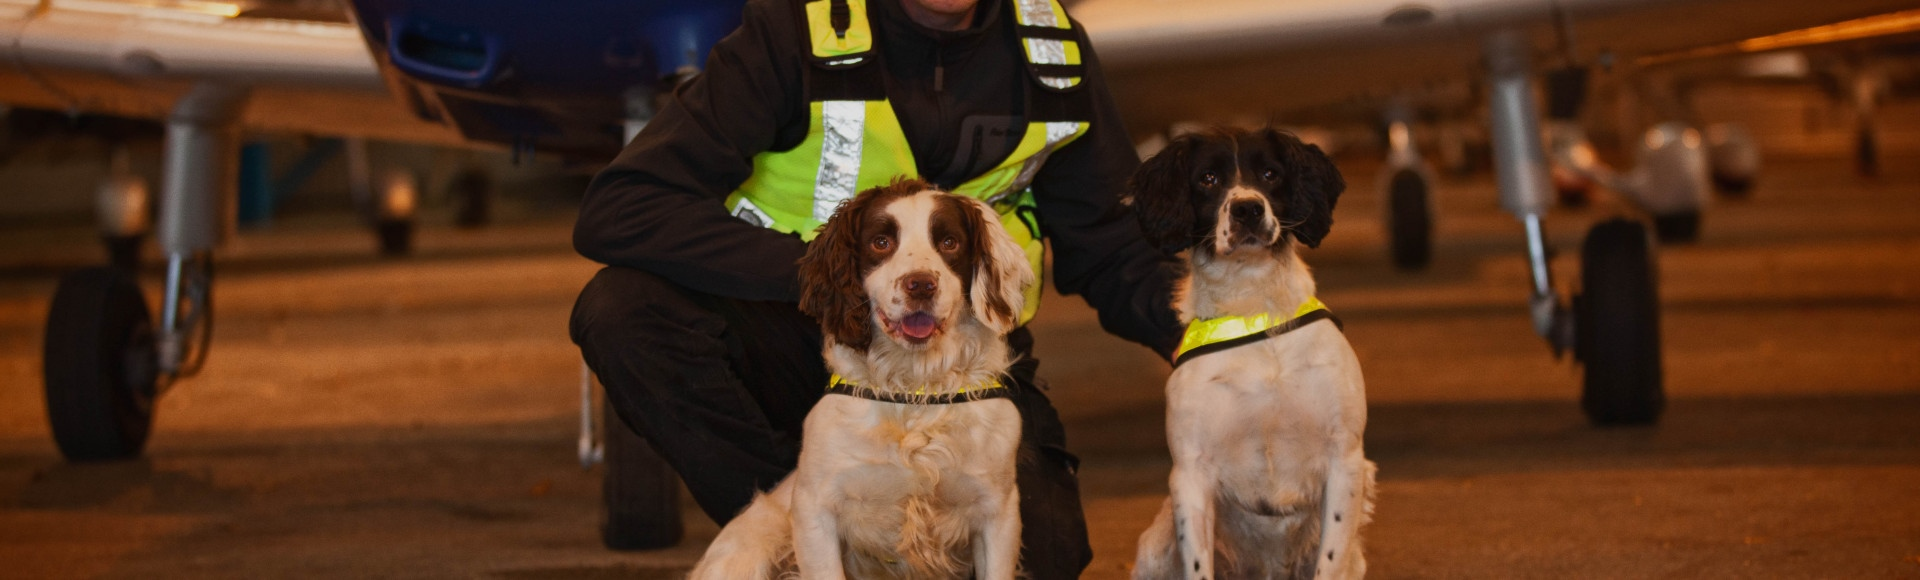 Explosive Detection Dogs Airport